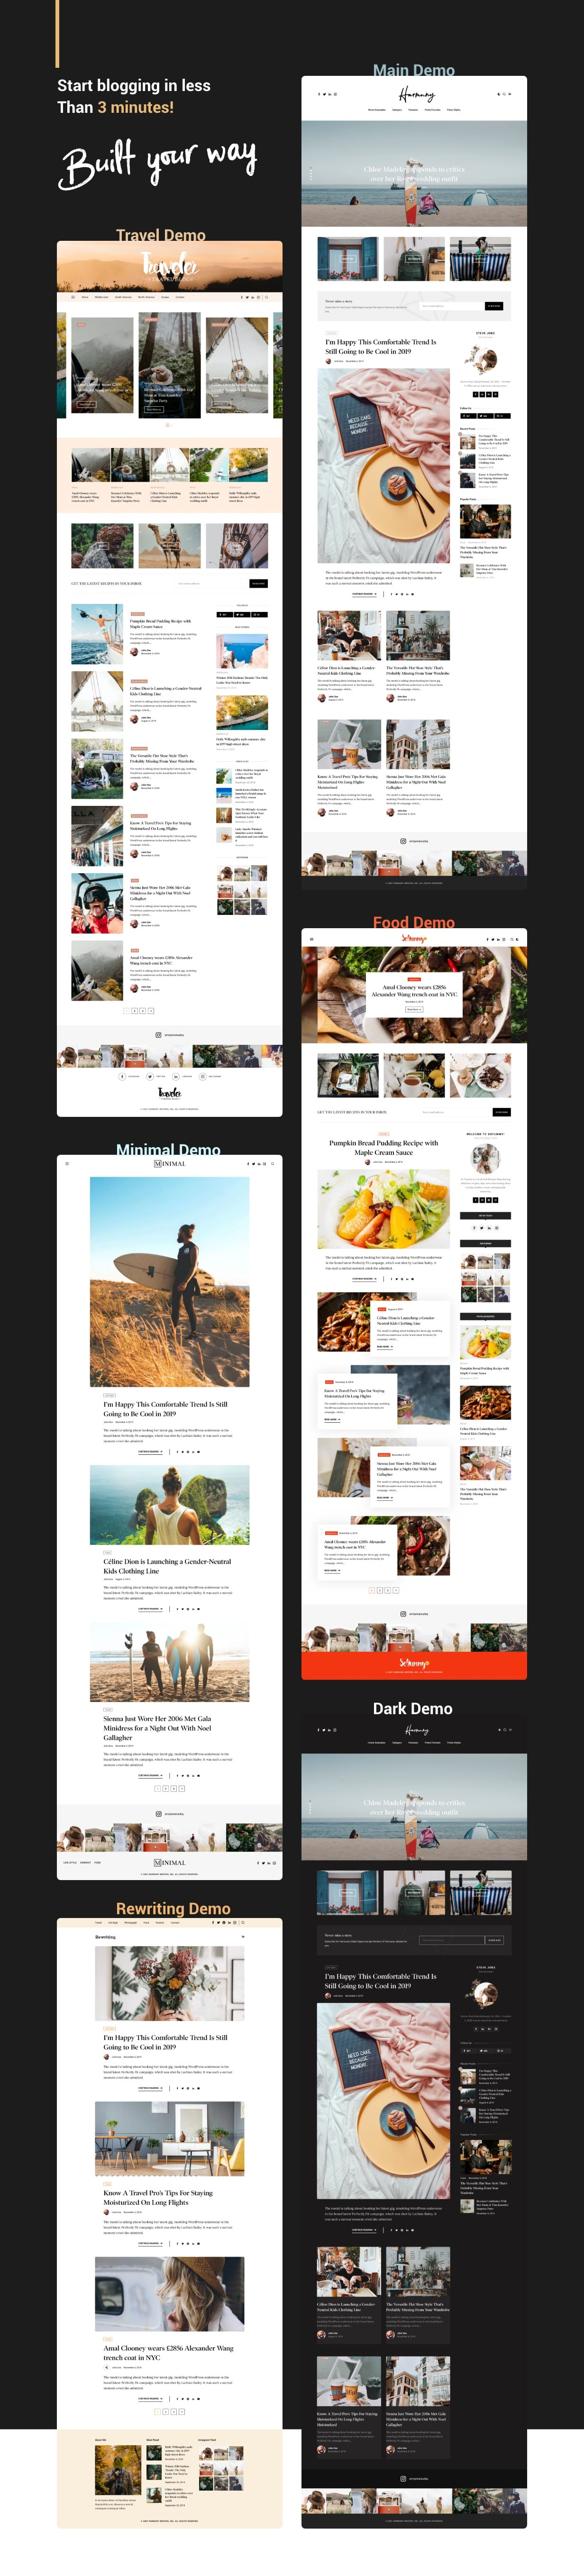 Harmuny - Modern WordPress Blog Theme - 5